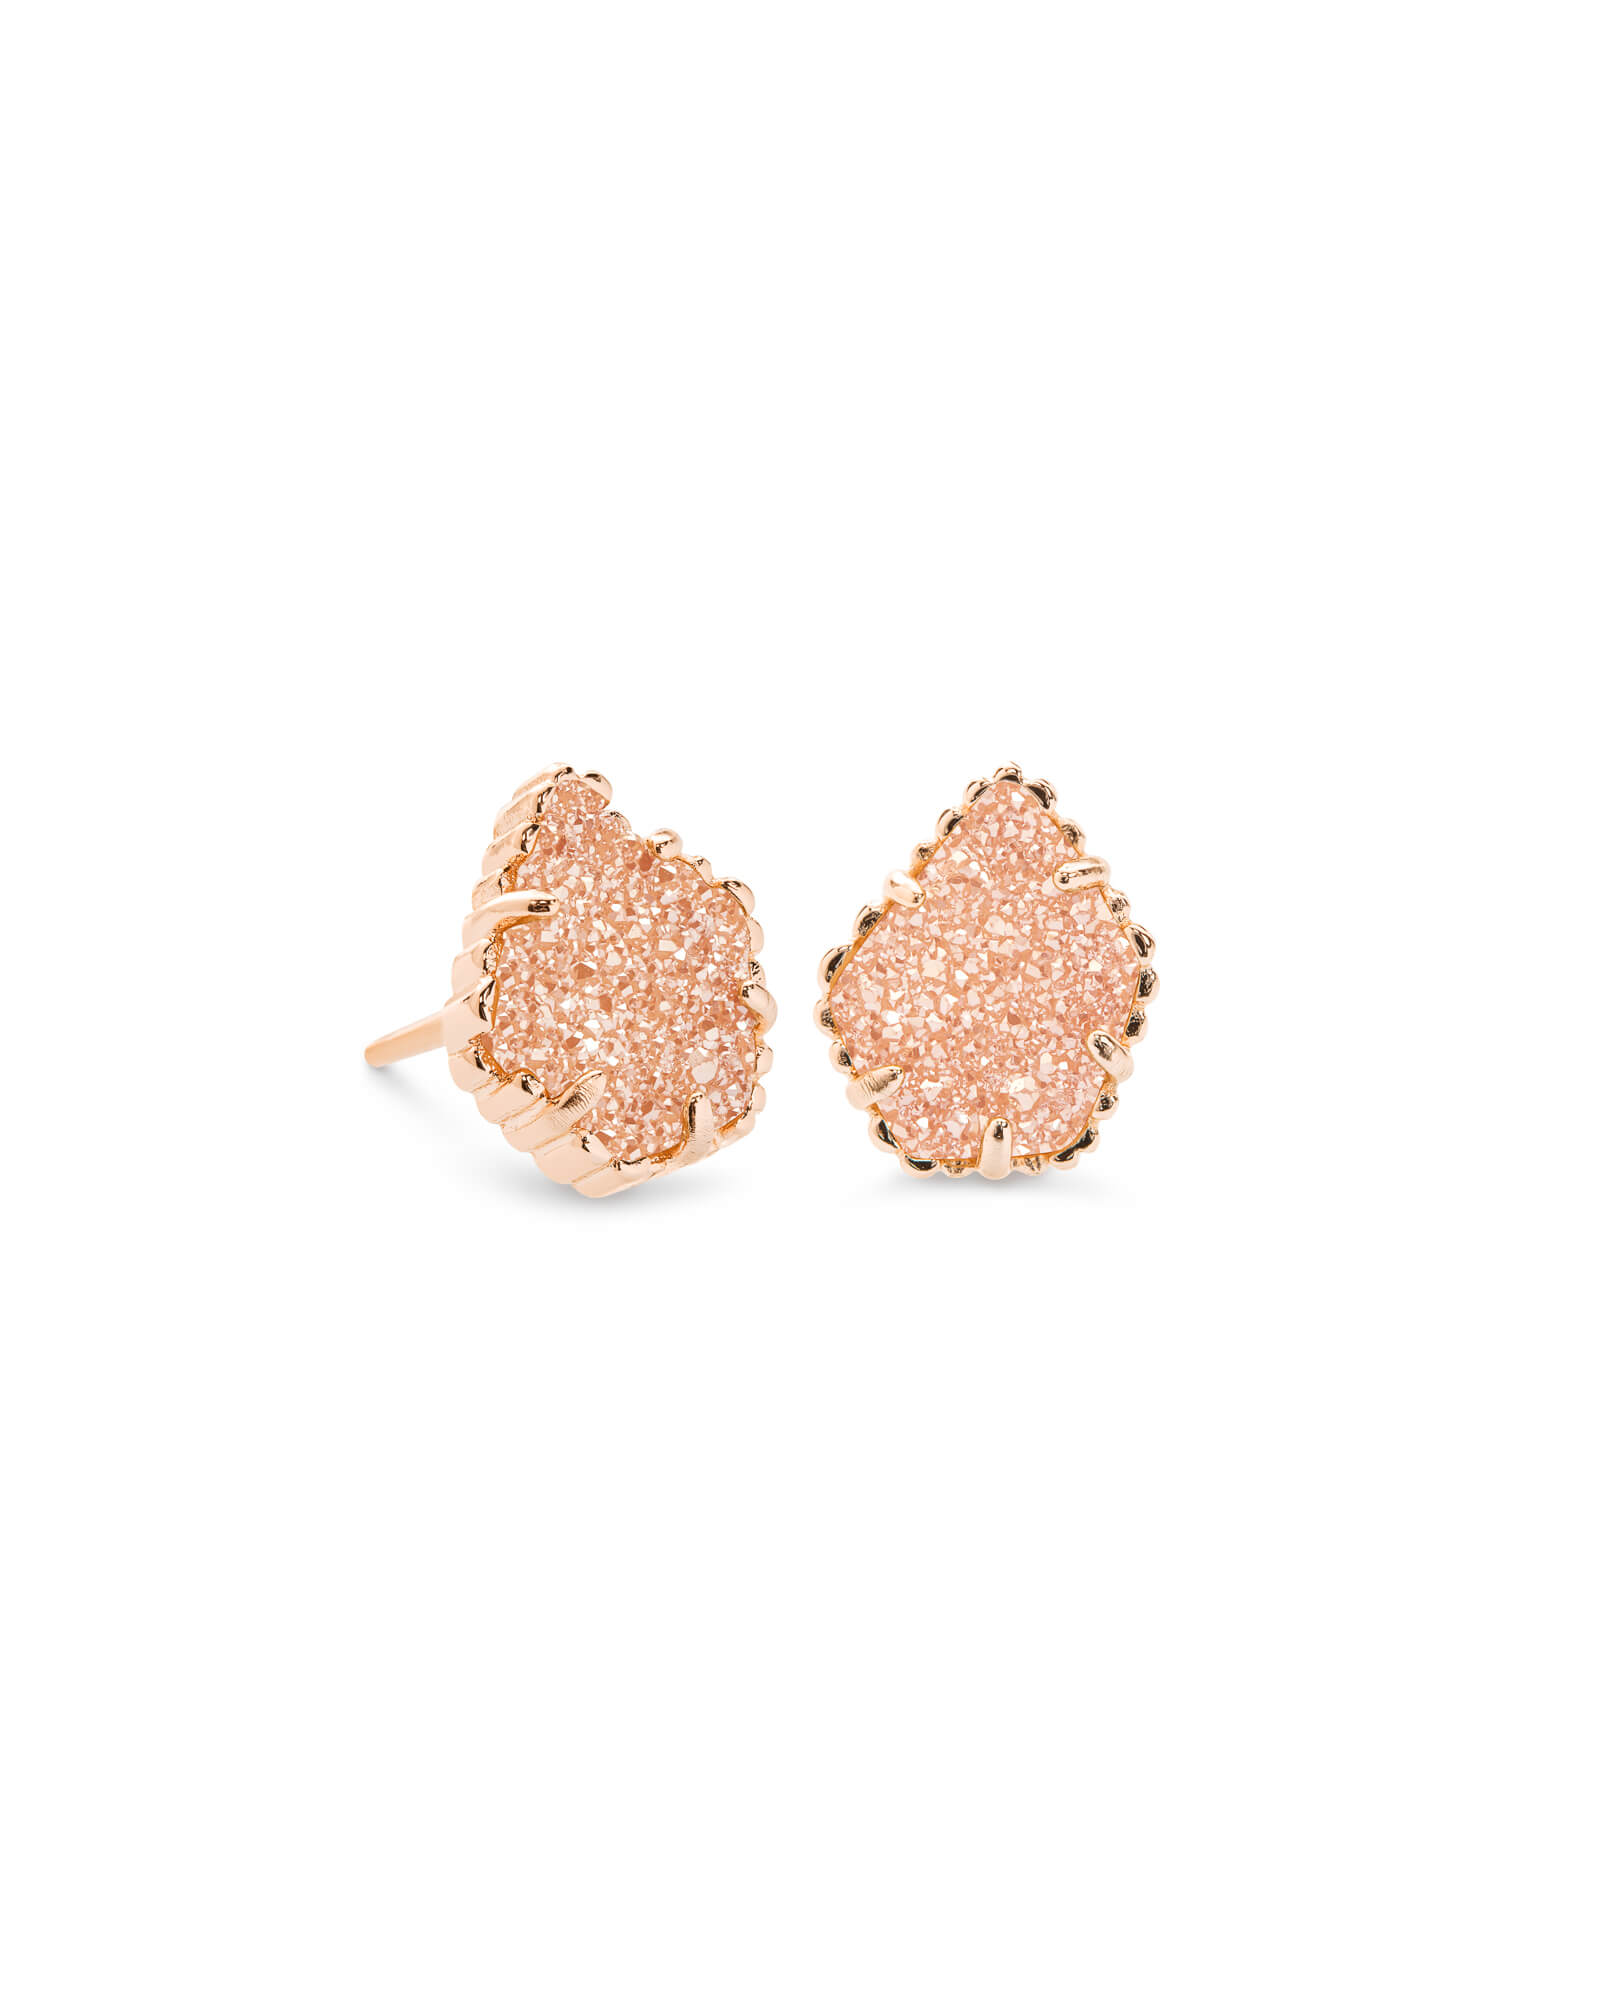 Tessa Rose Gold Stud Earrings in Sand Drusy